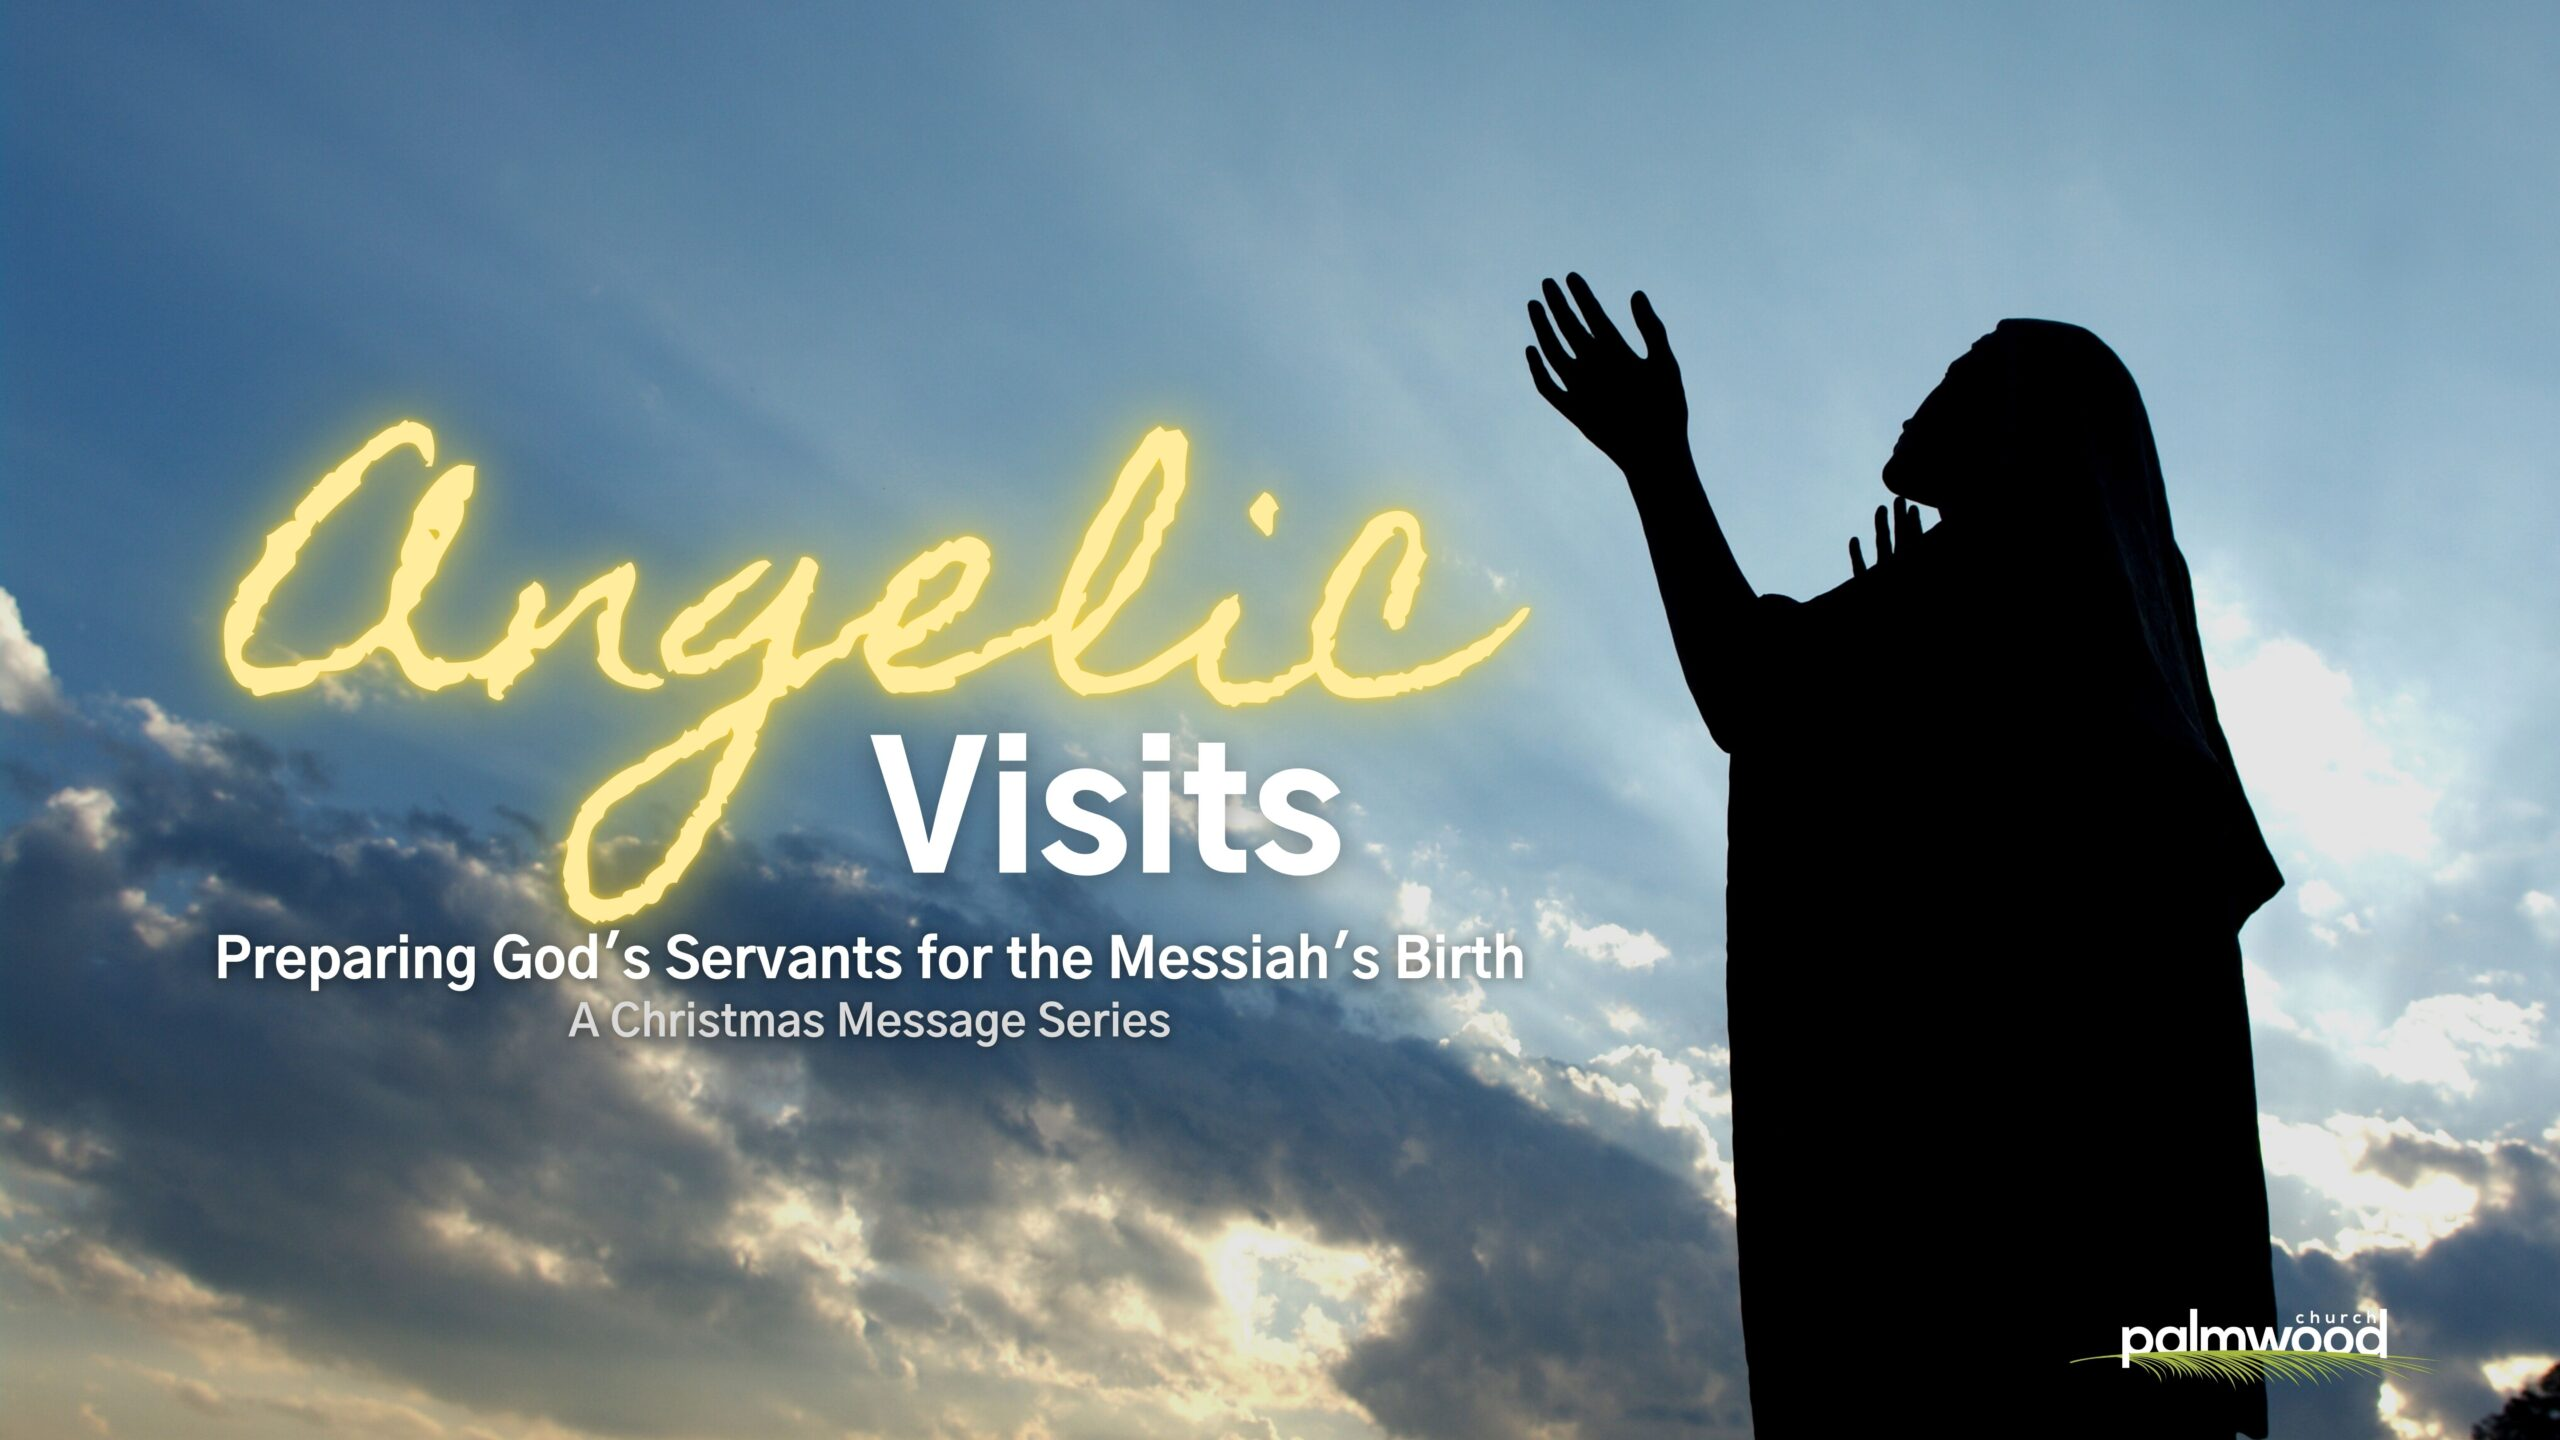 Angelic Visits - The Angel Visits the Shepherds